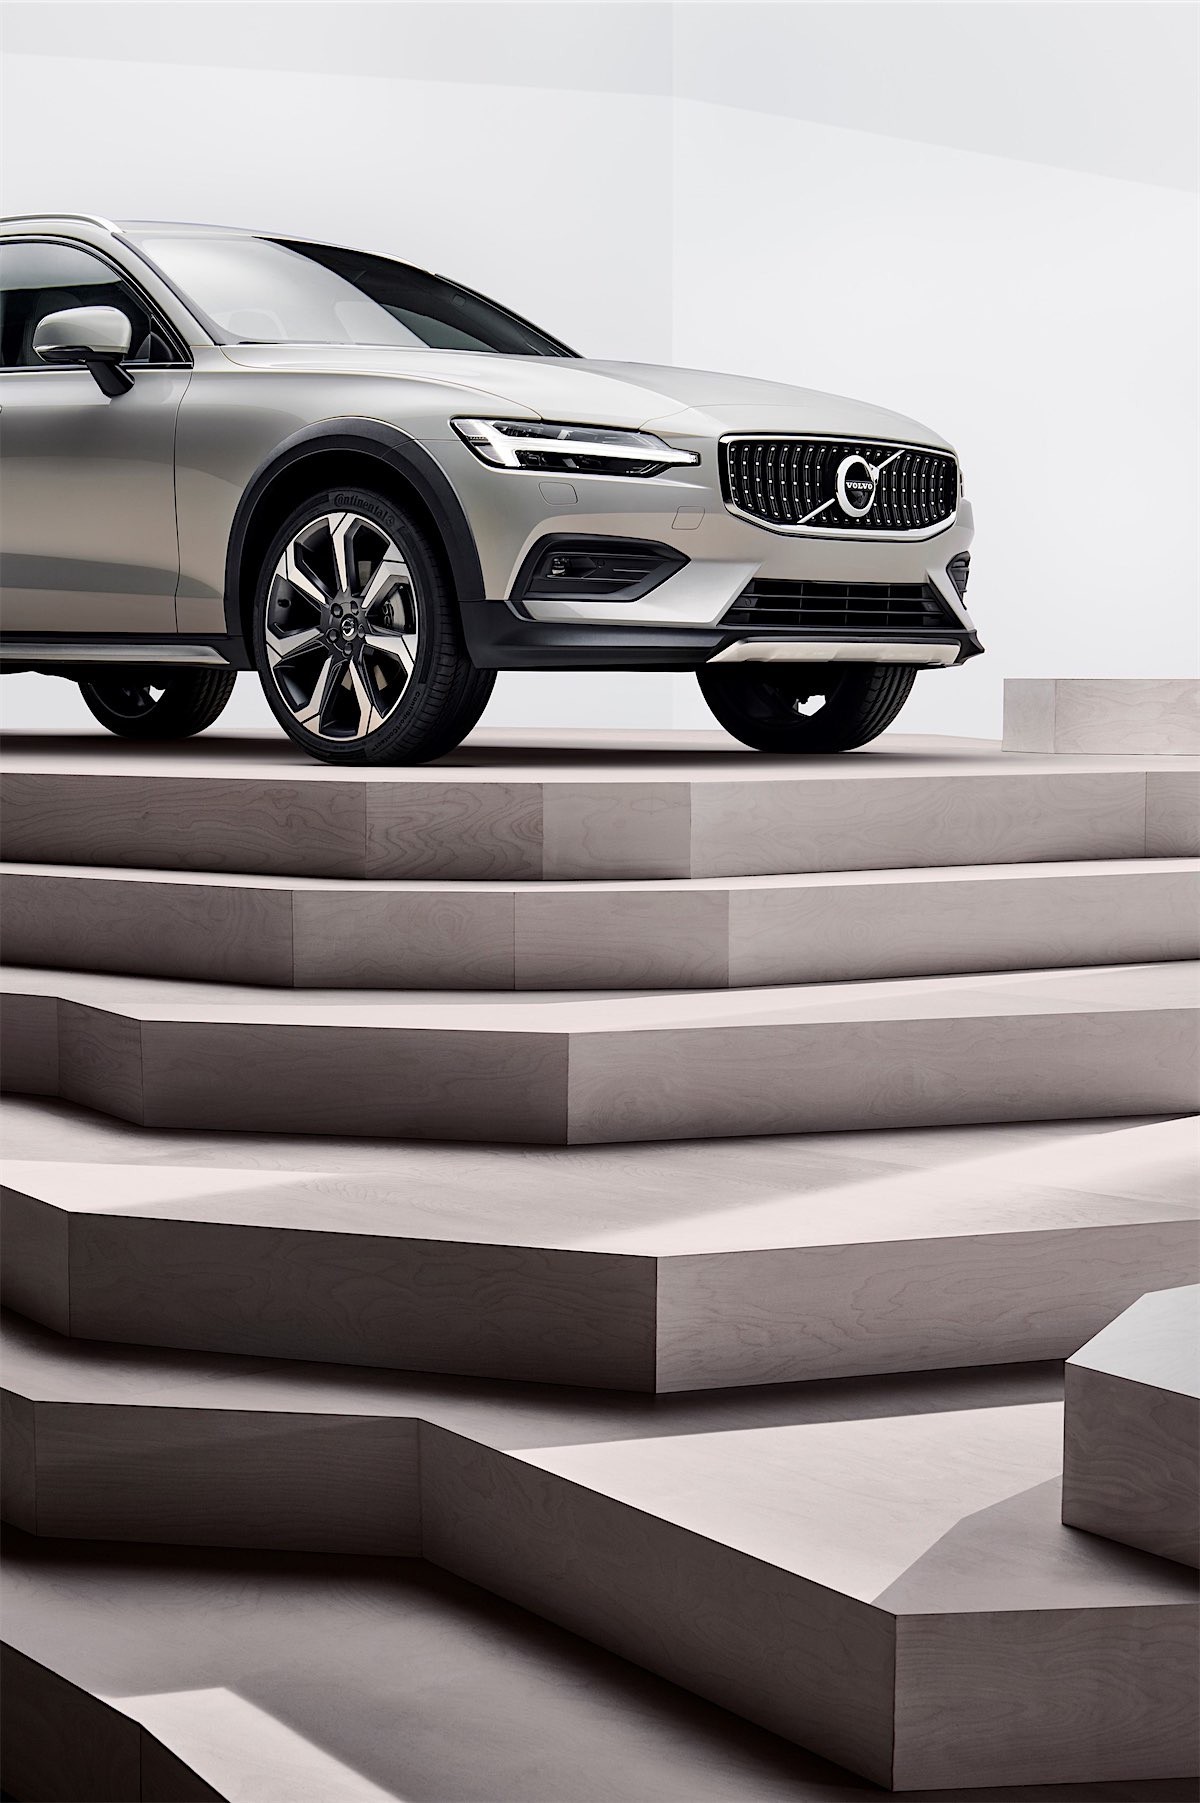 238458_new_volvo_v60_cross_country_exterior-resized.jpg